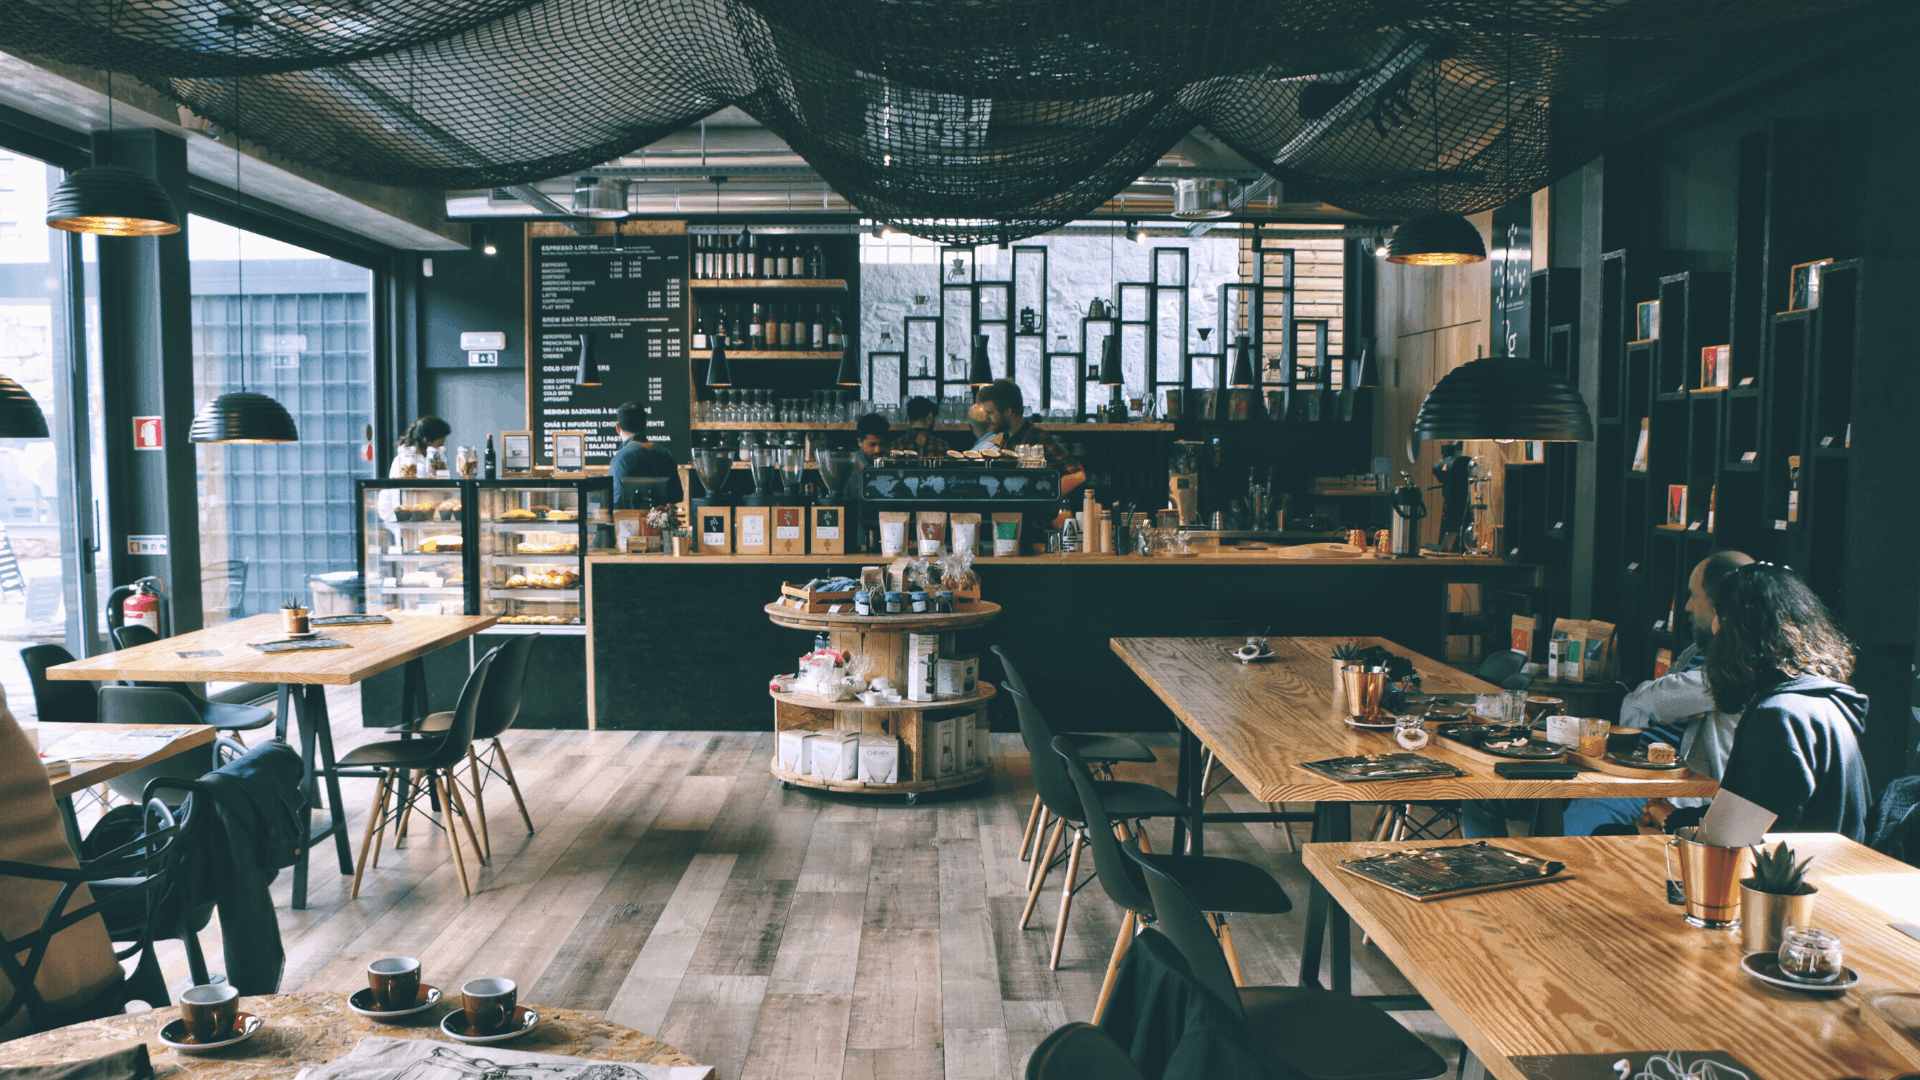 3 Clever Coffee Shop Interior Design Examples And Ideas On The Line Toast Pos